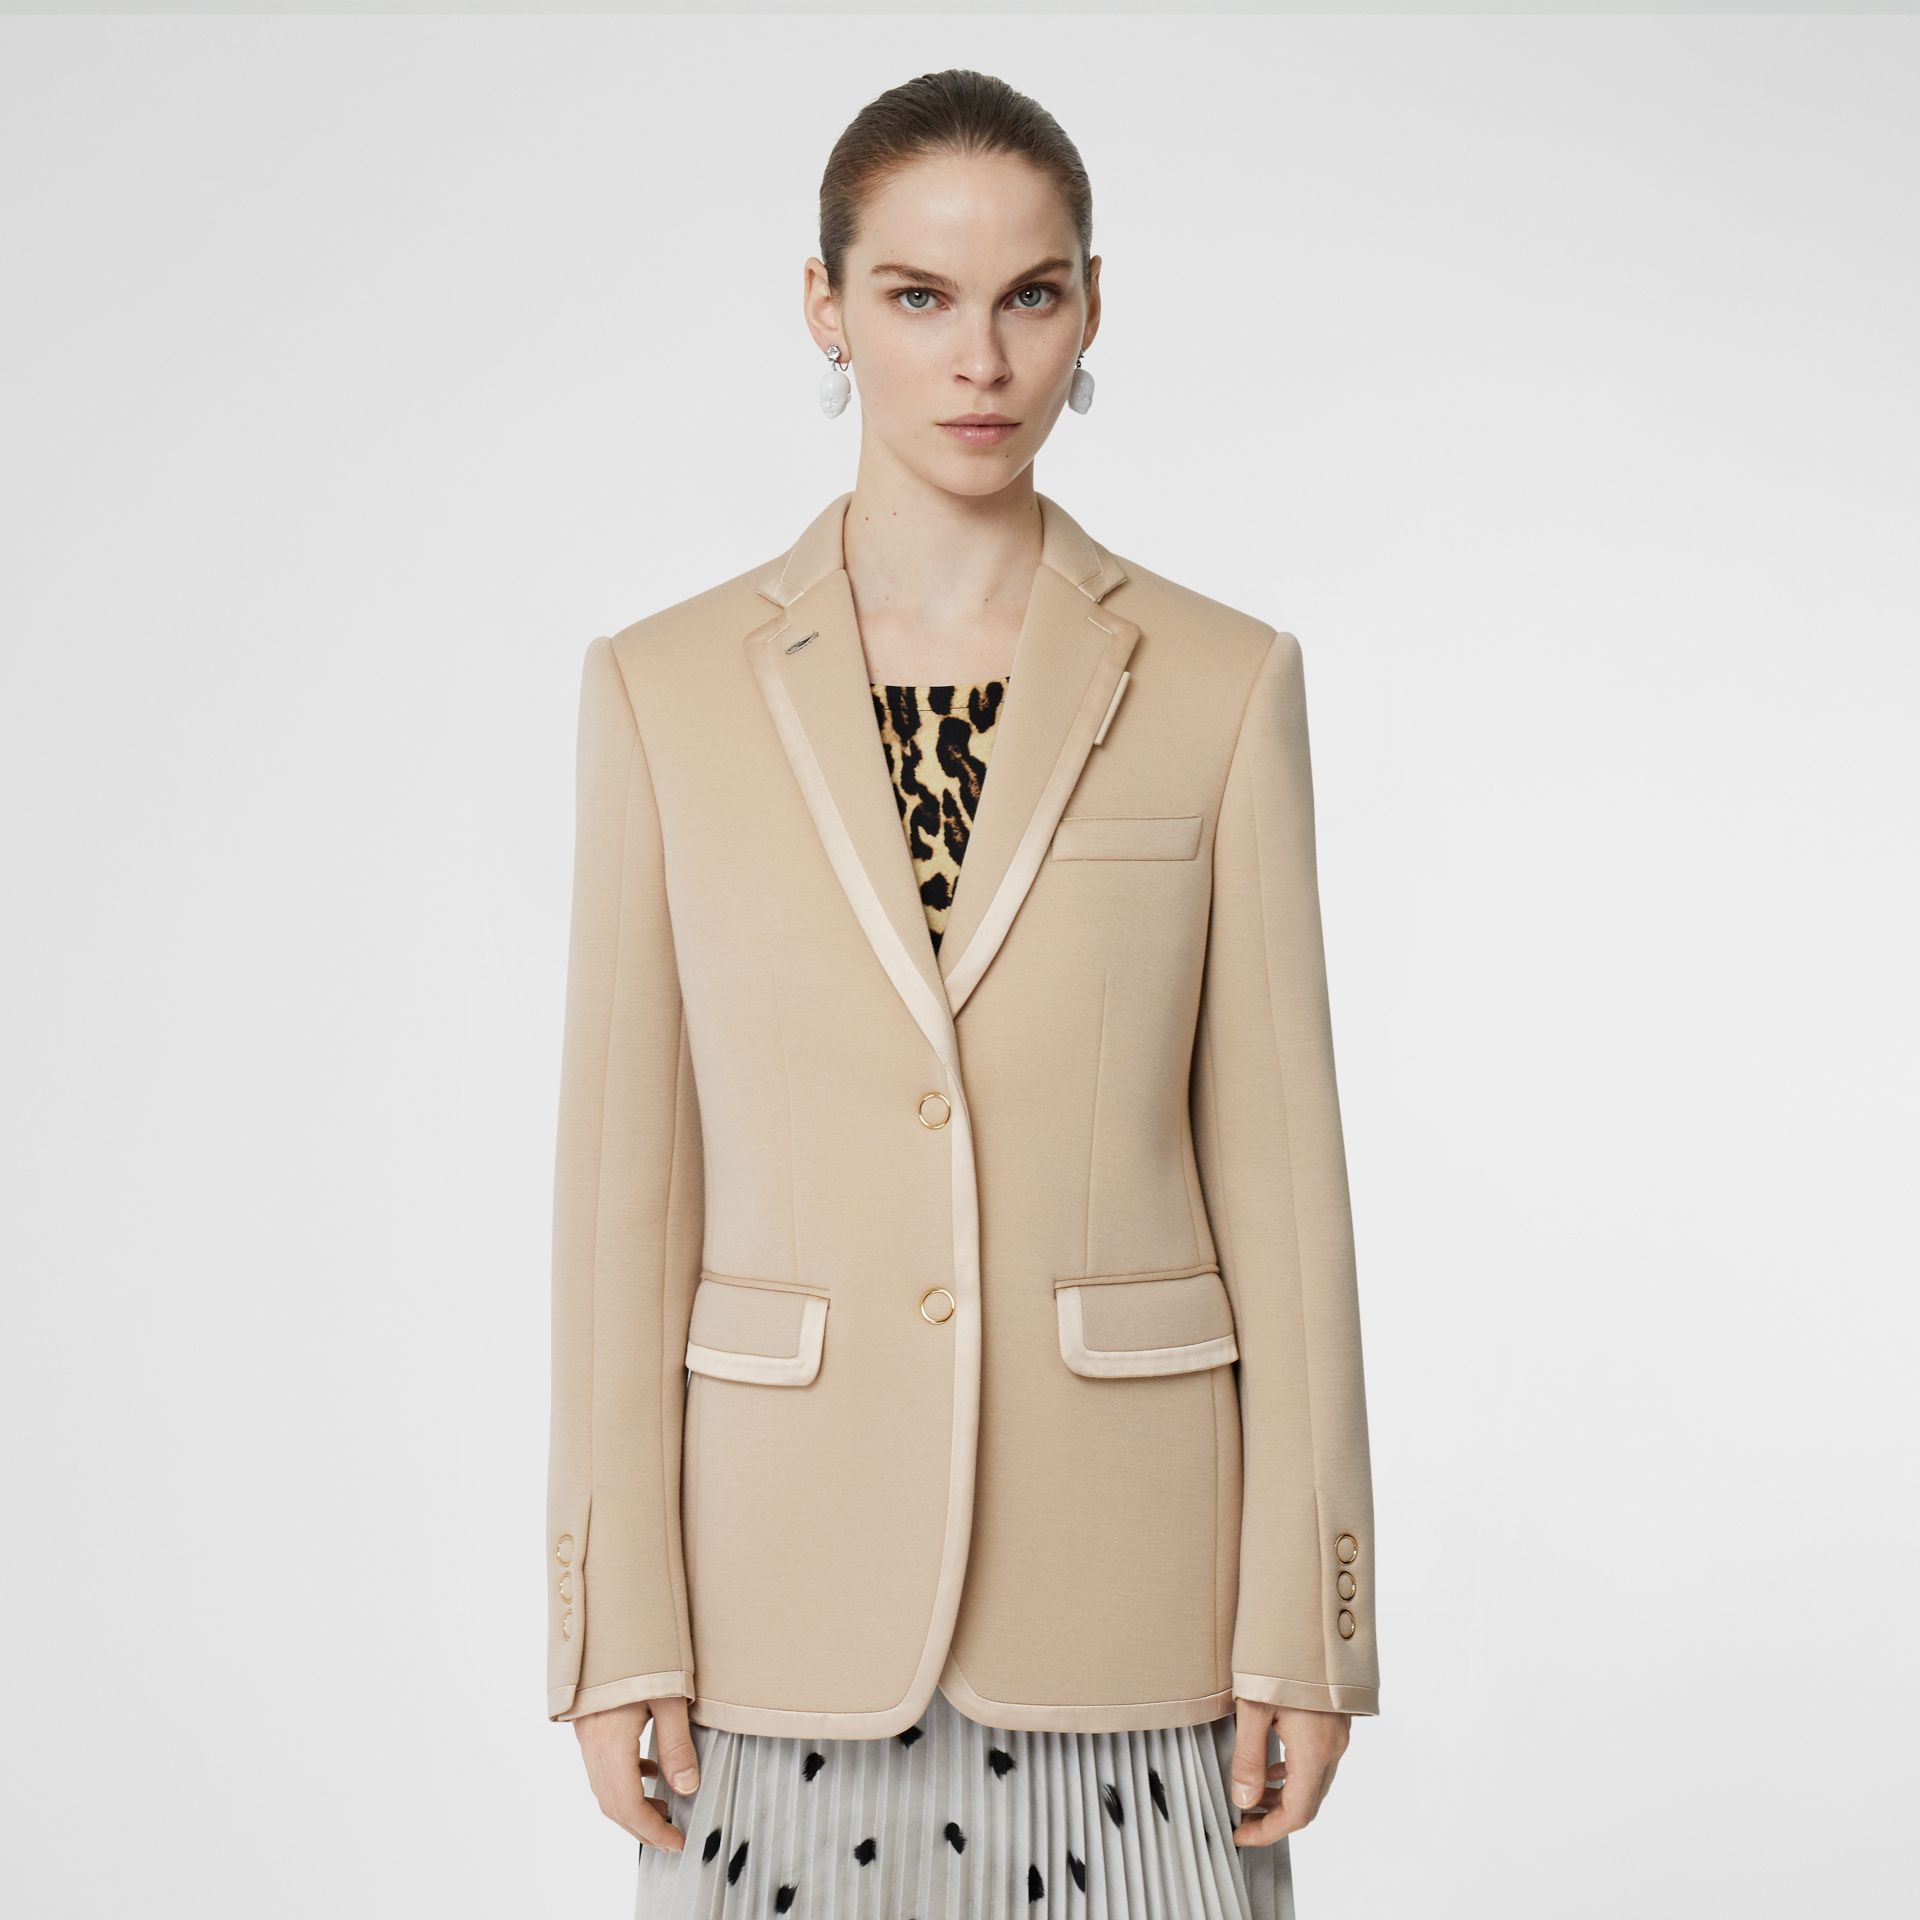 Silk Trim Neoprene Blazer in Teddy Beige - Women | Burberry - gallery image 5